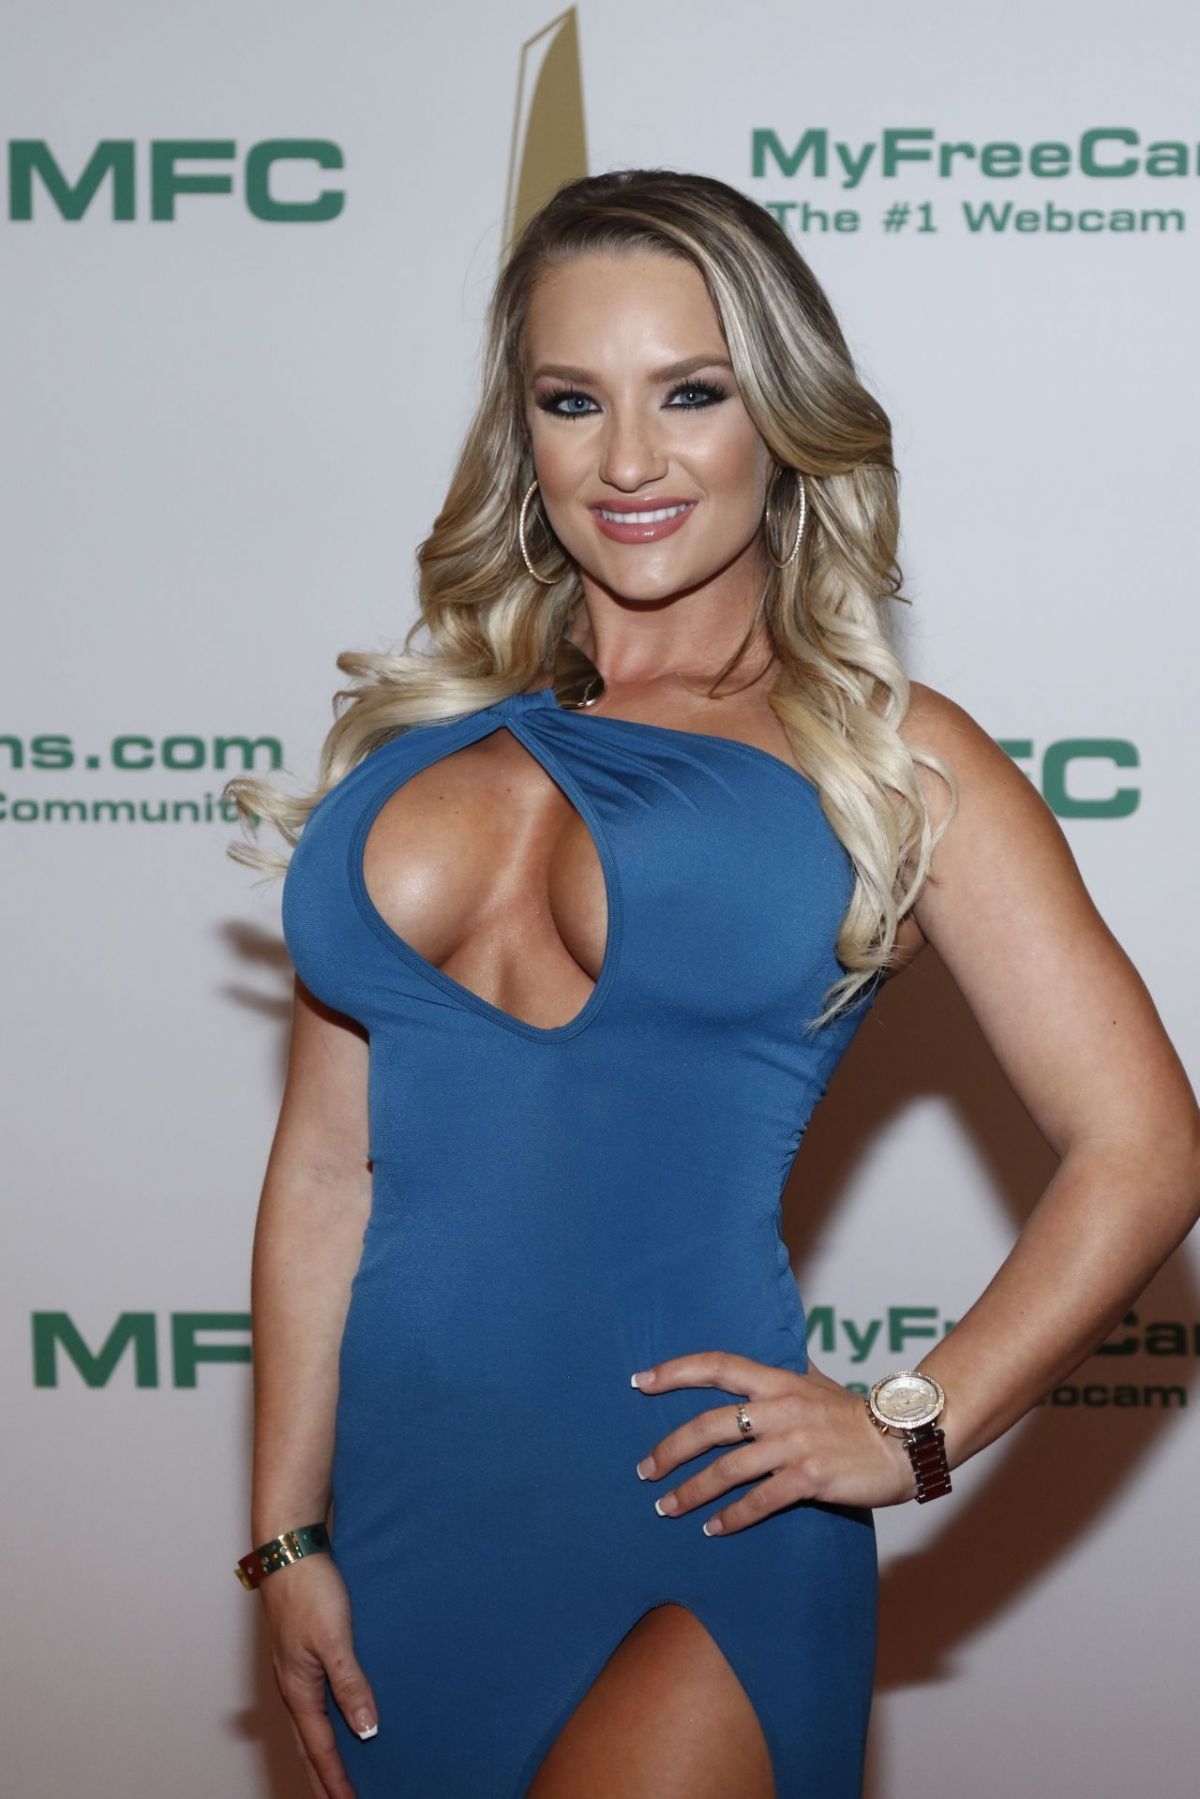 ALI CARTER at Xbiz Awards in Los Angeles, January 2017